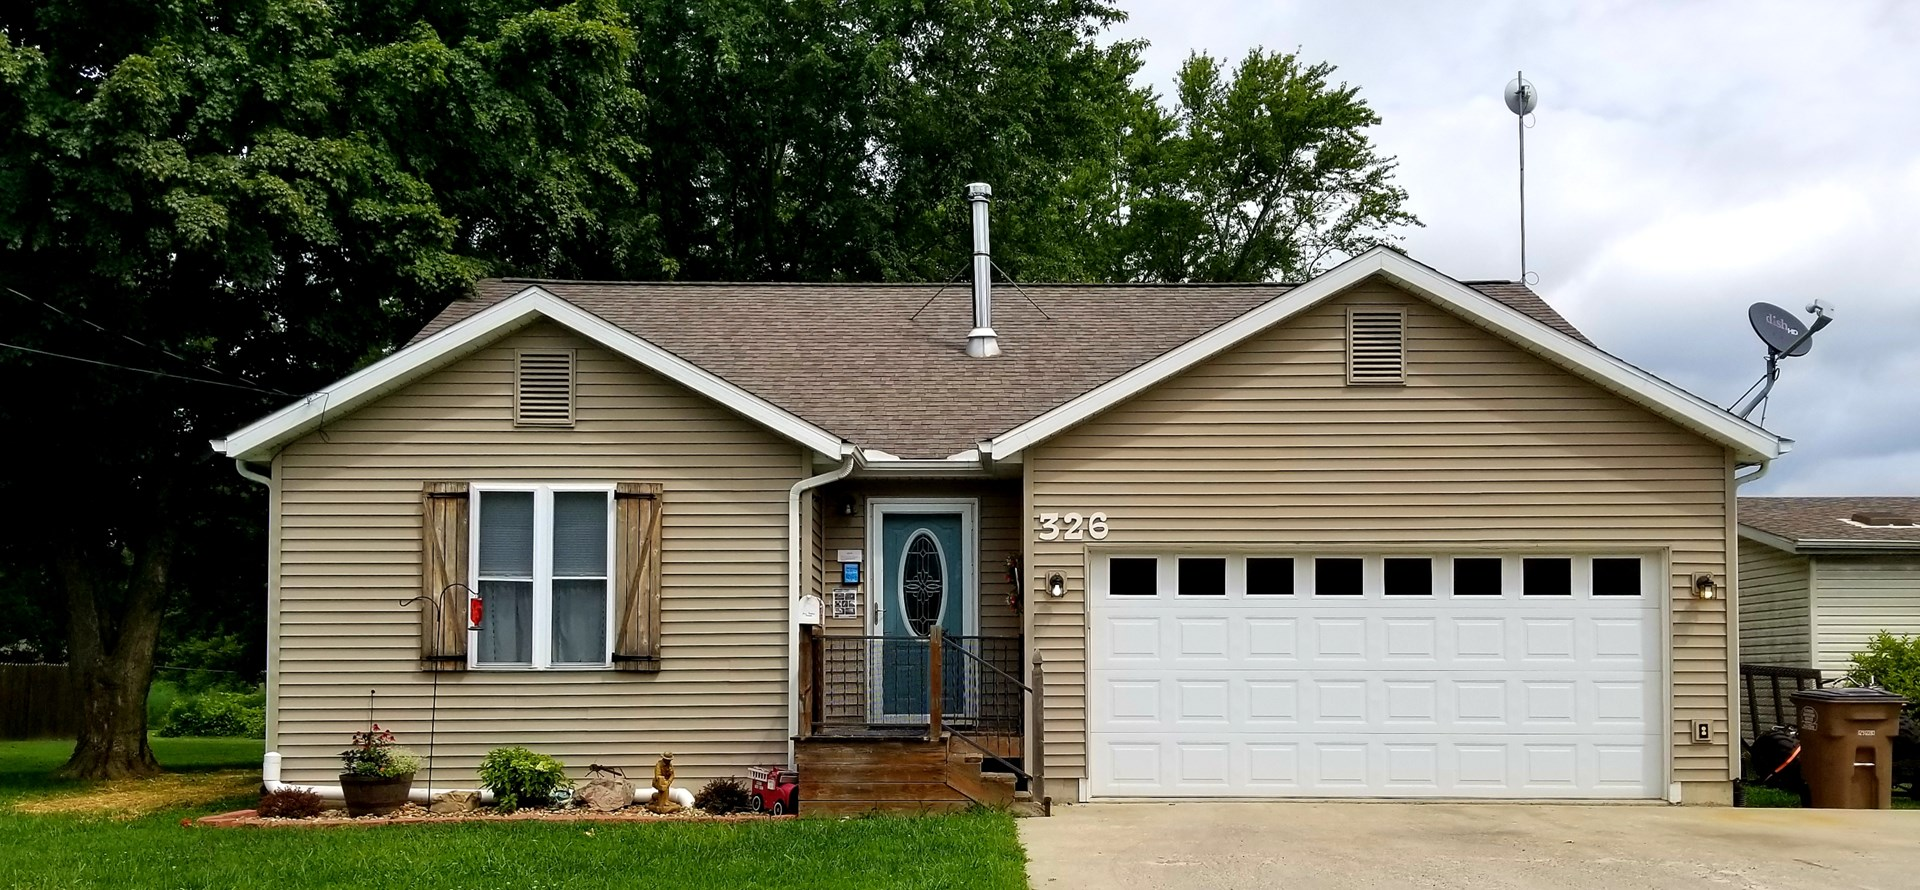 Carlinville 3 BRs 2 Baths, Open Concept, Fenced-In Yard